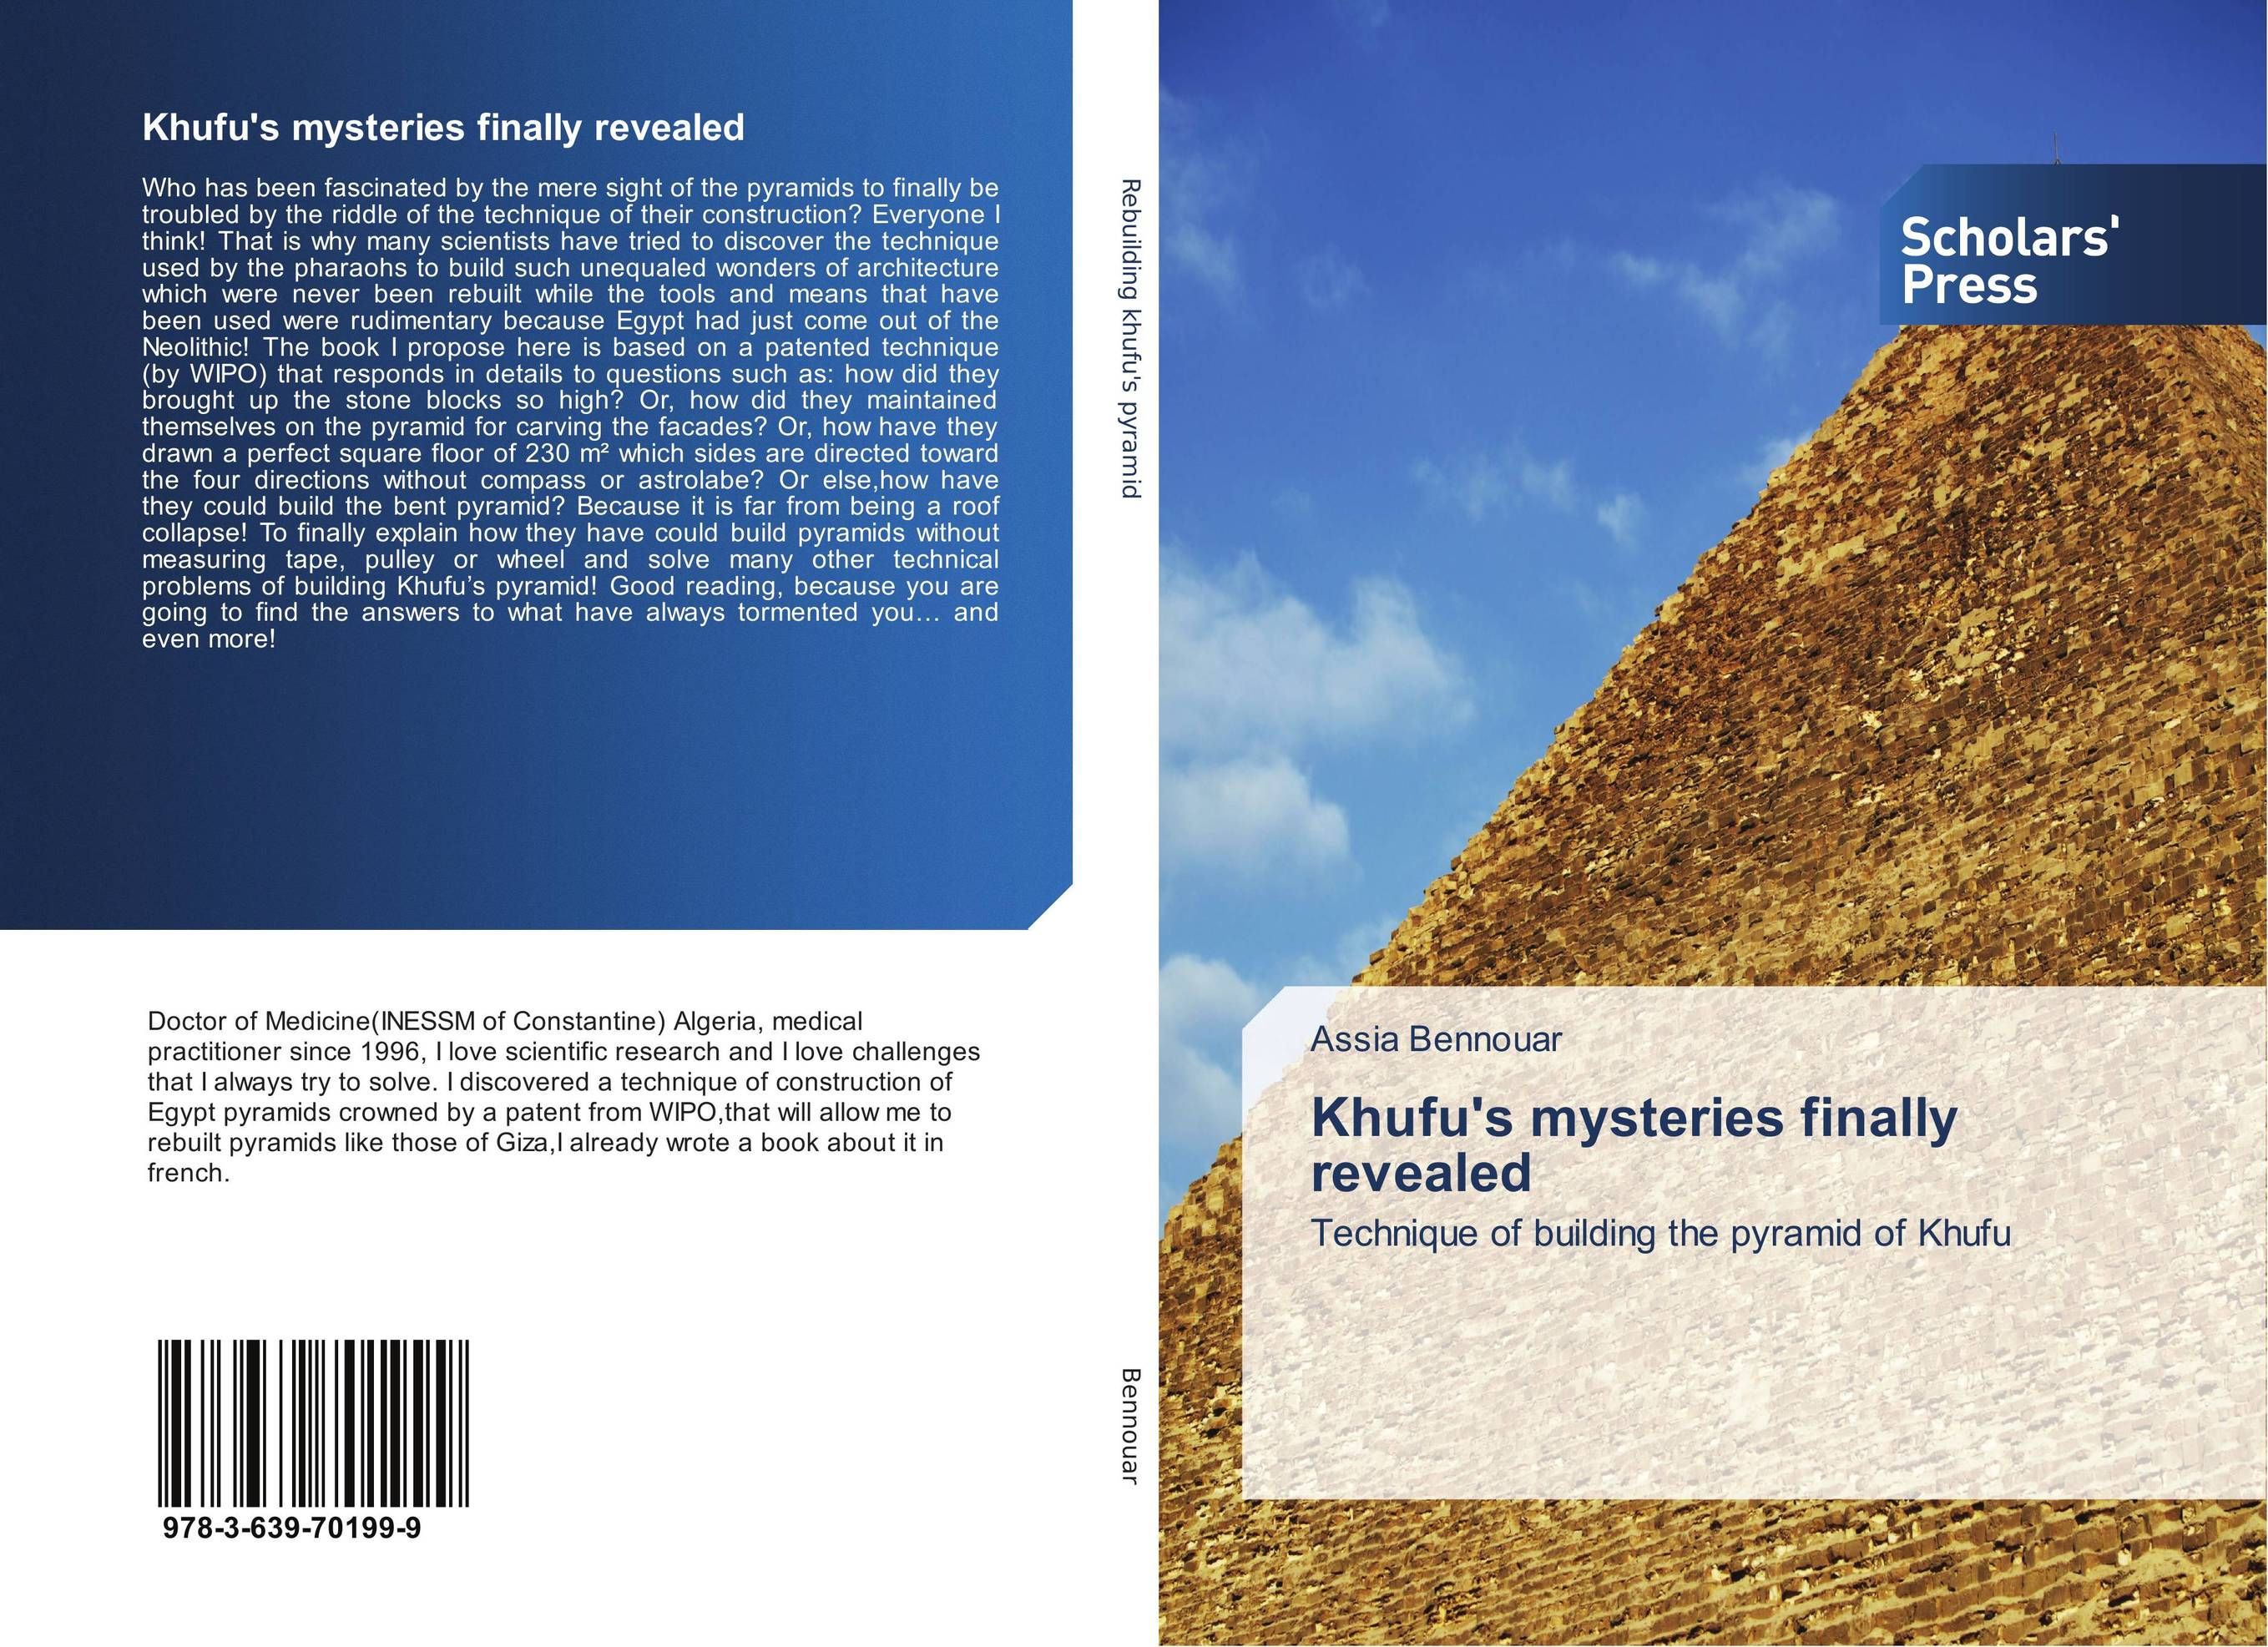 Khufu's mysteries finally revealed the valves are self acting i e they operate without the supply of auxiliary energy such as electricity or compressed air